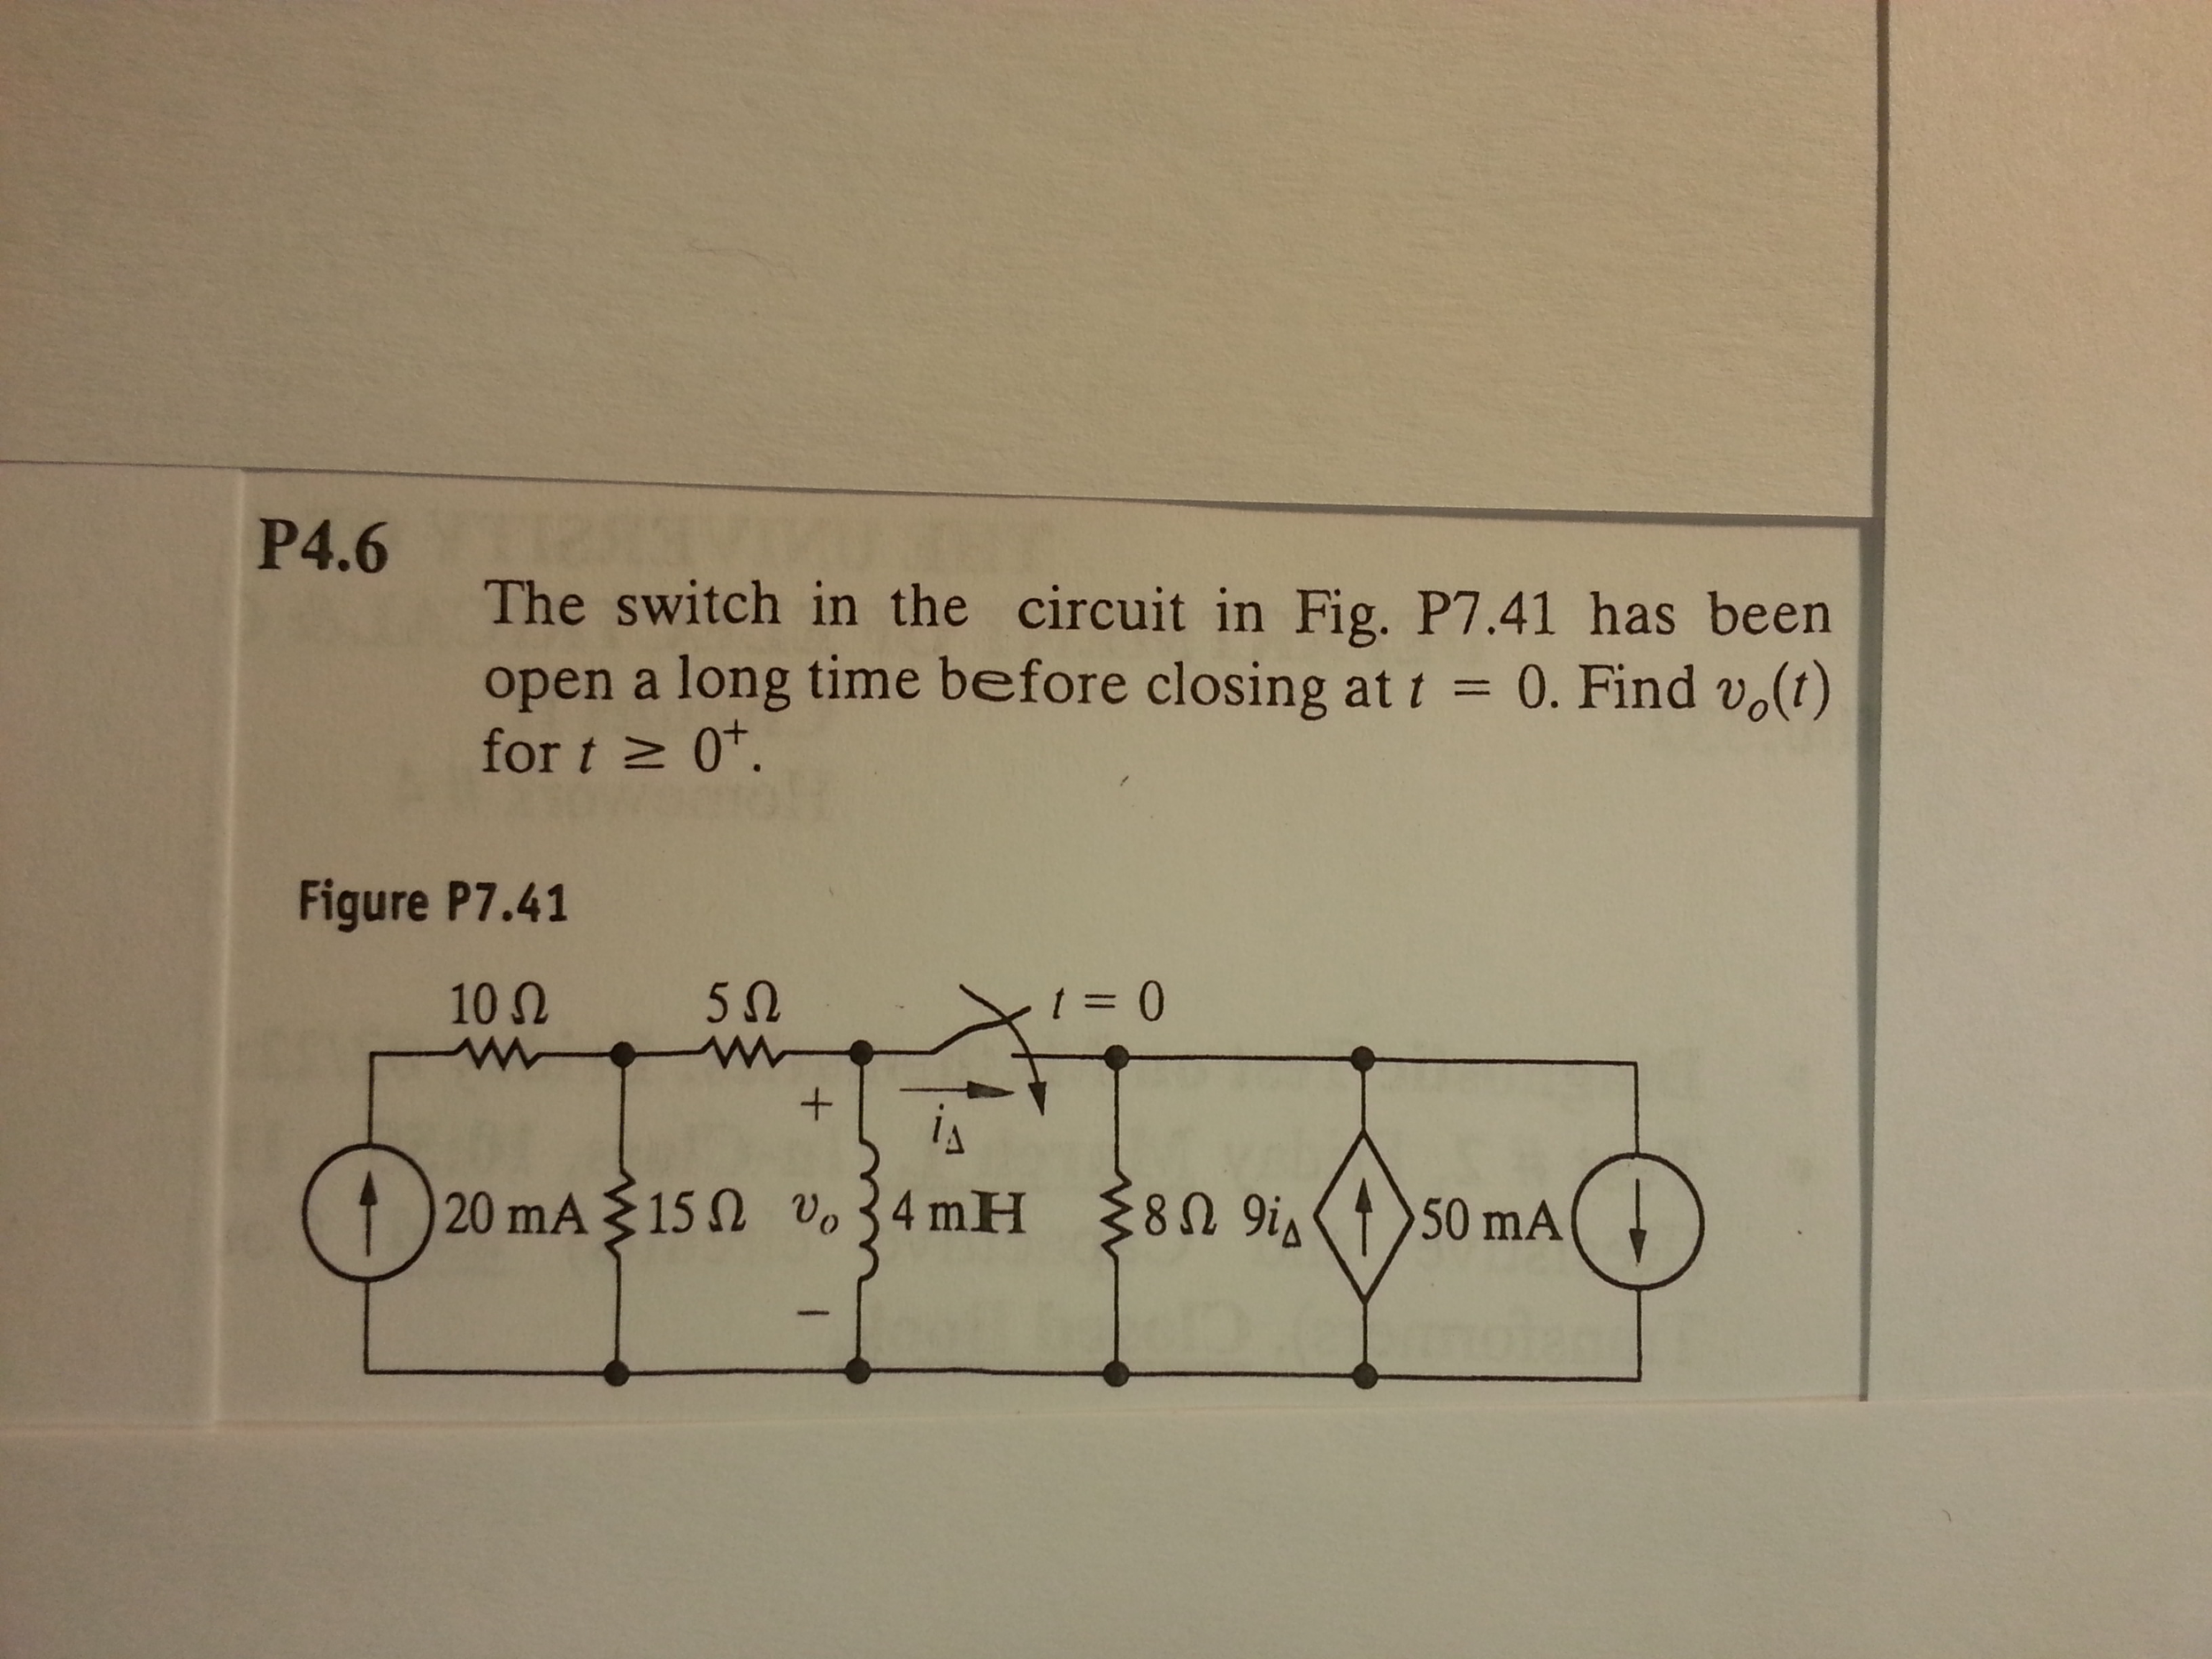 The switch in the circuit in Fig. P7.41 has been o